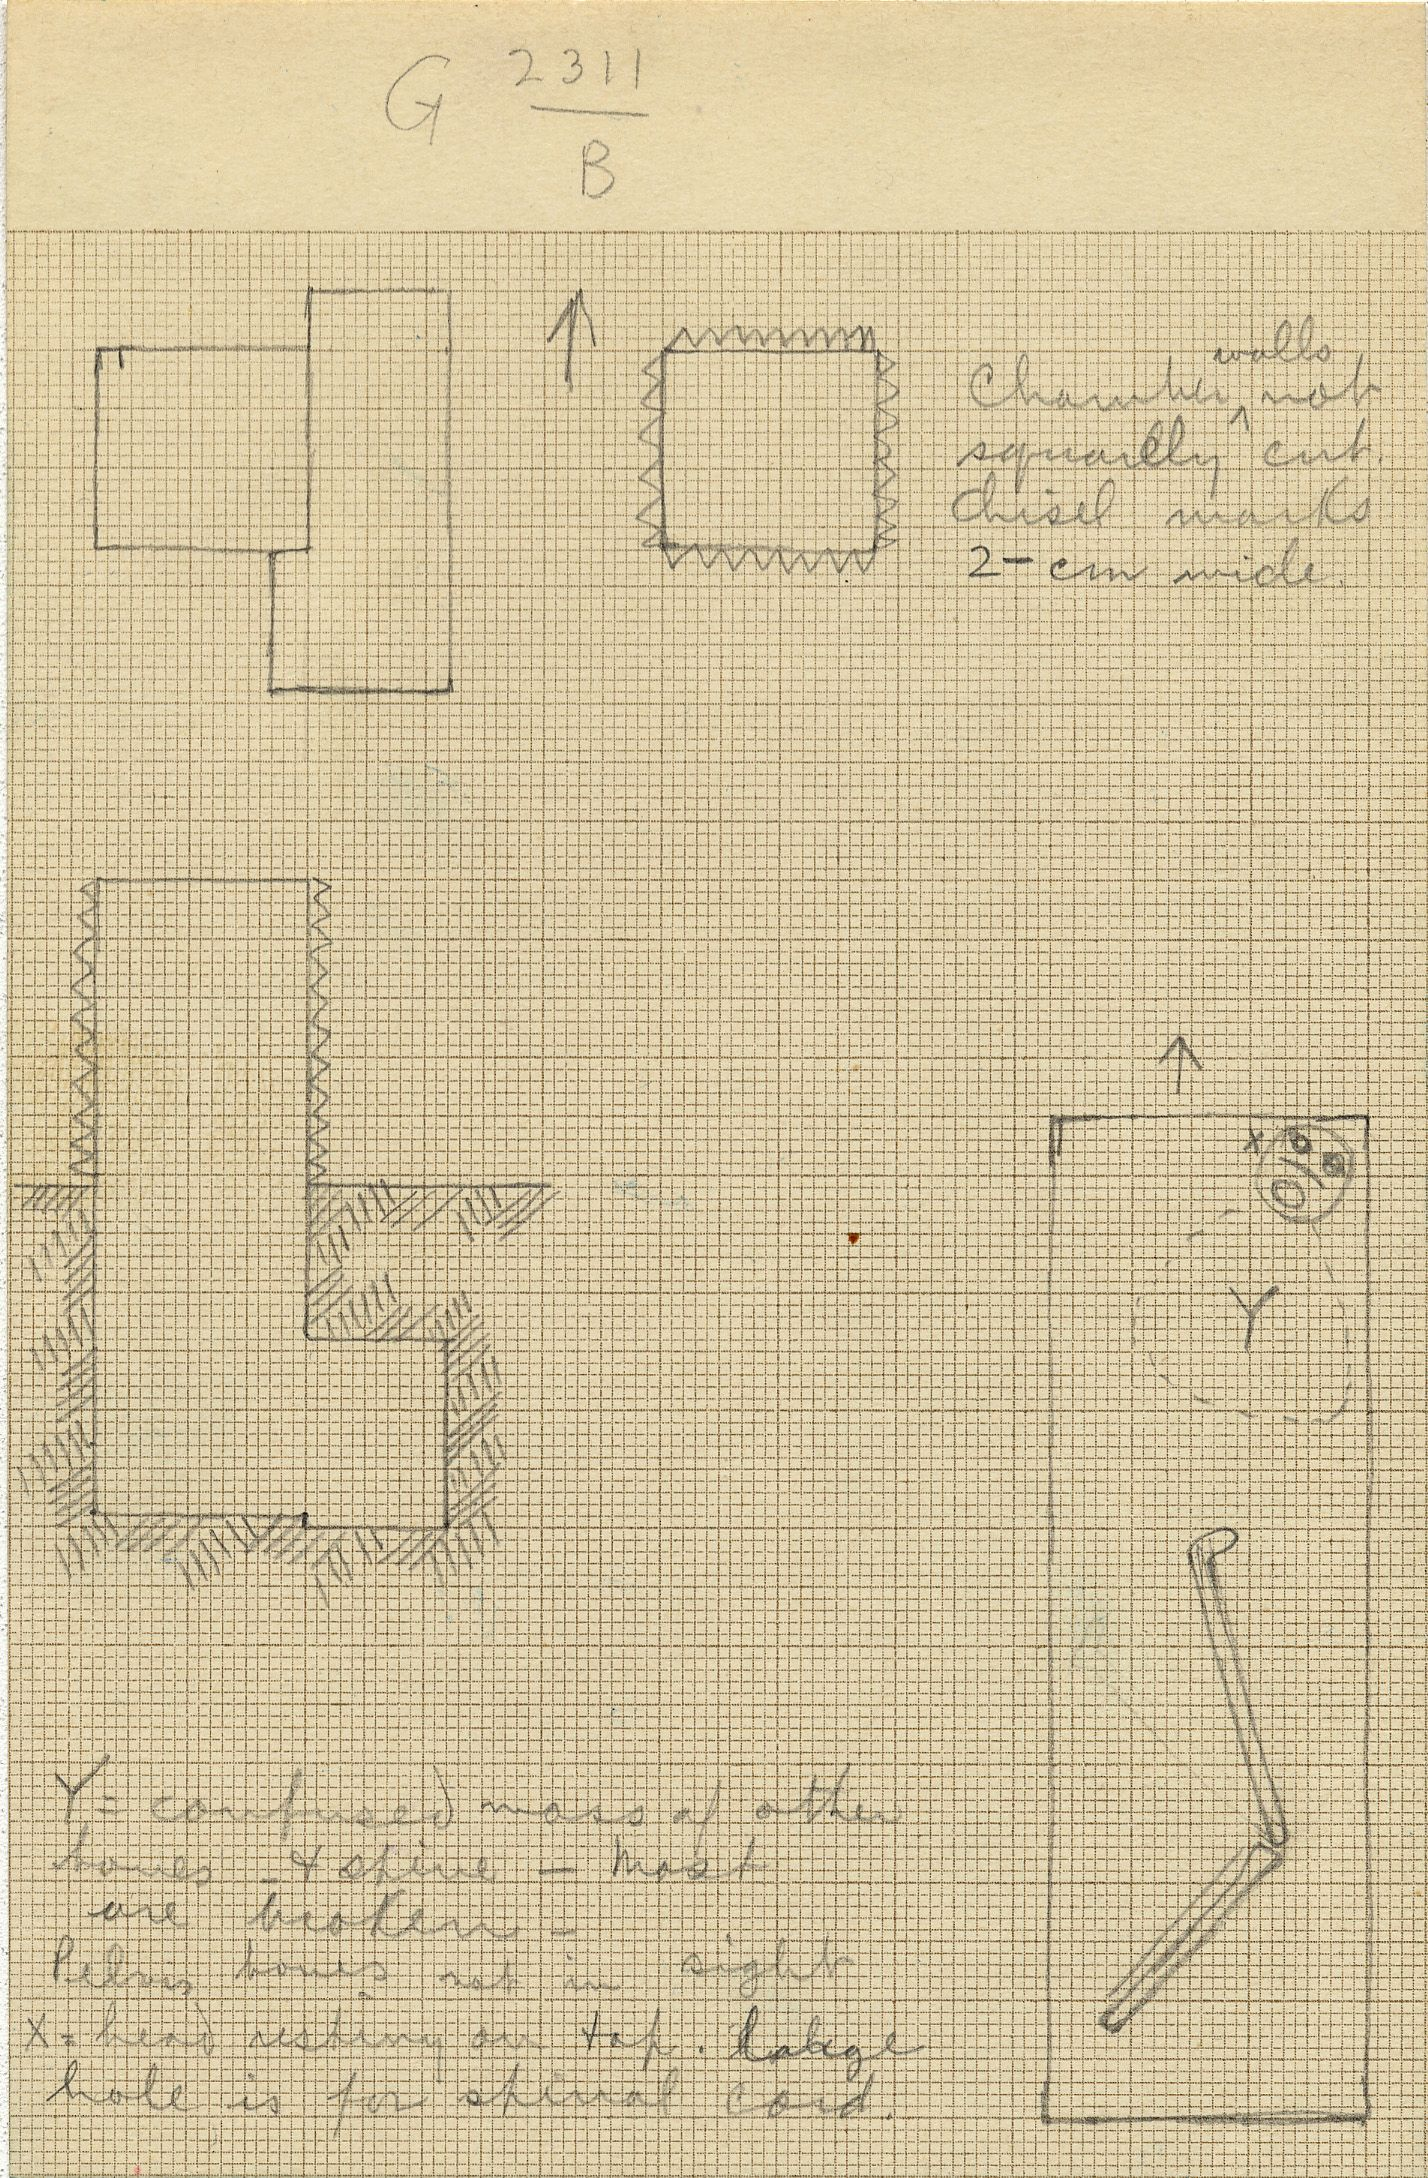 Maps and plans: G 2311, Shaft B